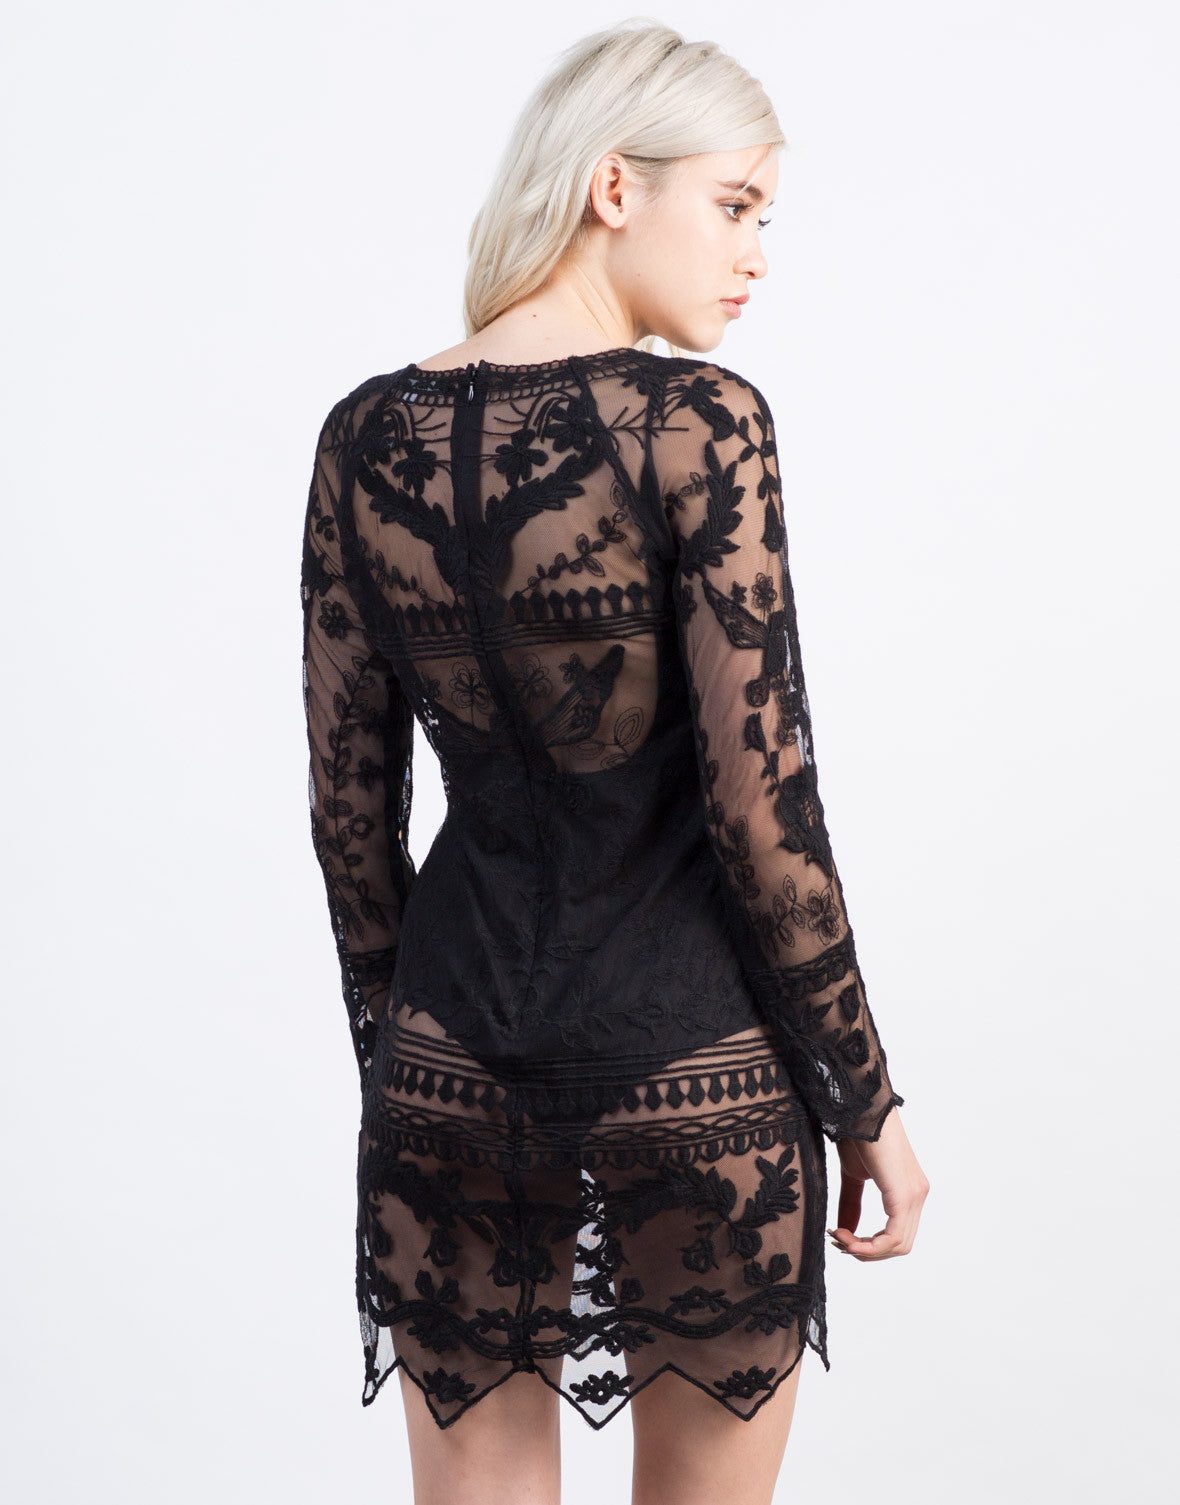 Back View of Dark Floral Sheer Dress